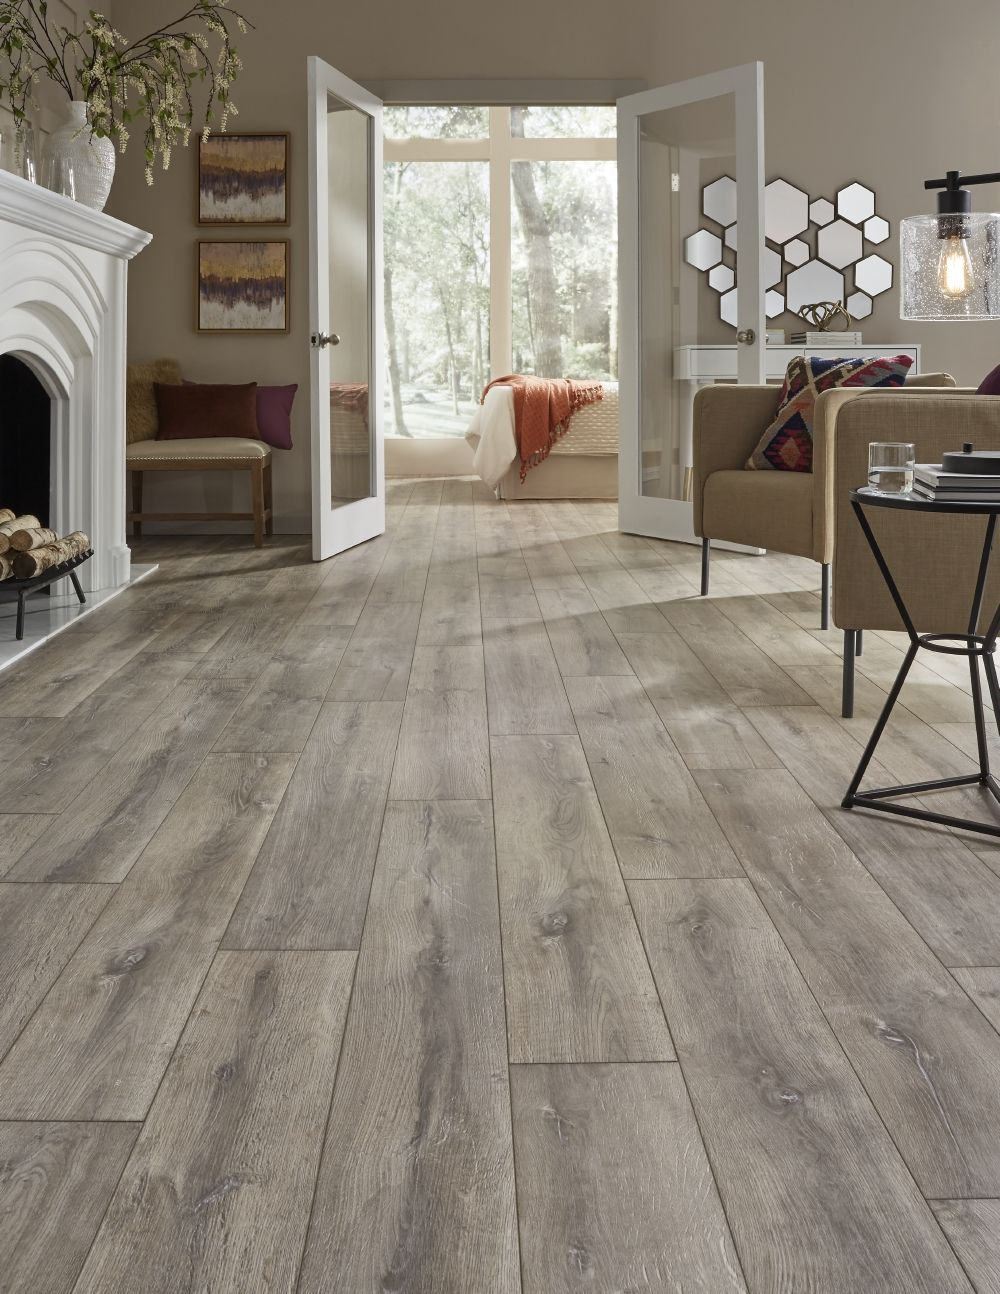 A European White Oak Look That Evokes Images Of Gently Time Worn